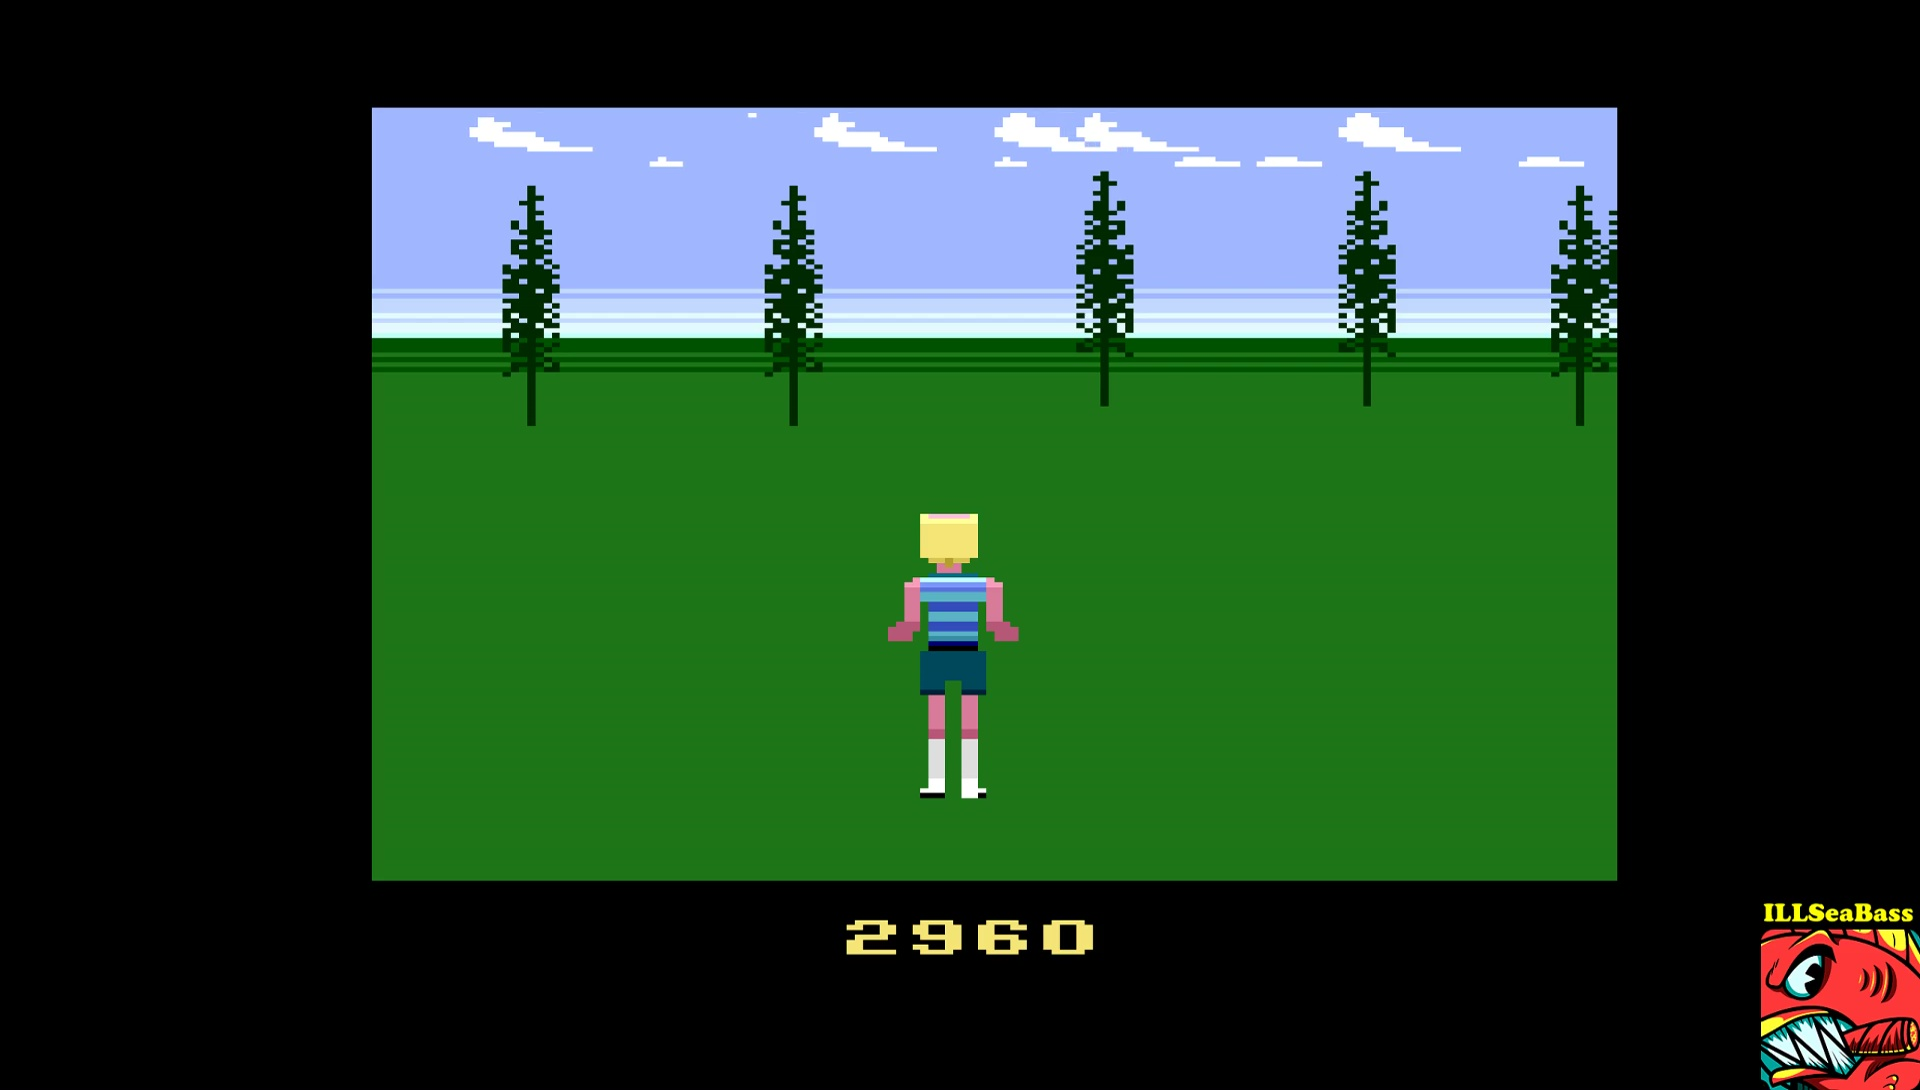 ILLSeaBass: California Games: Foot Bag (Atari 2600 Emulated) 2,960 points on 2017-04-01 17:35:39